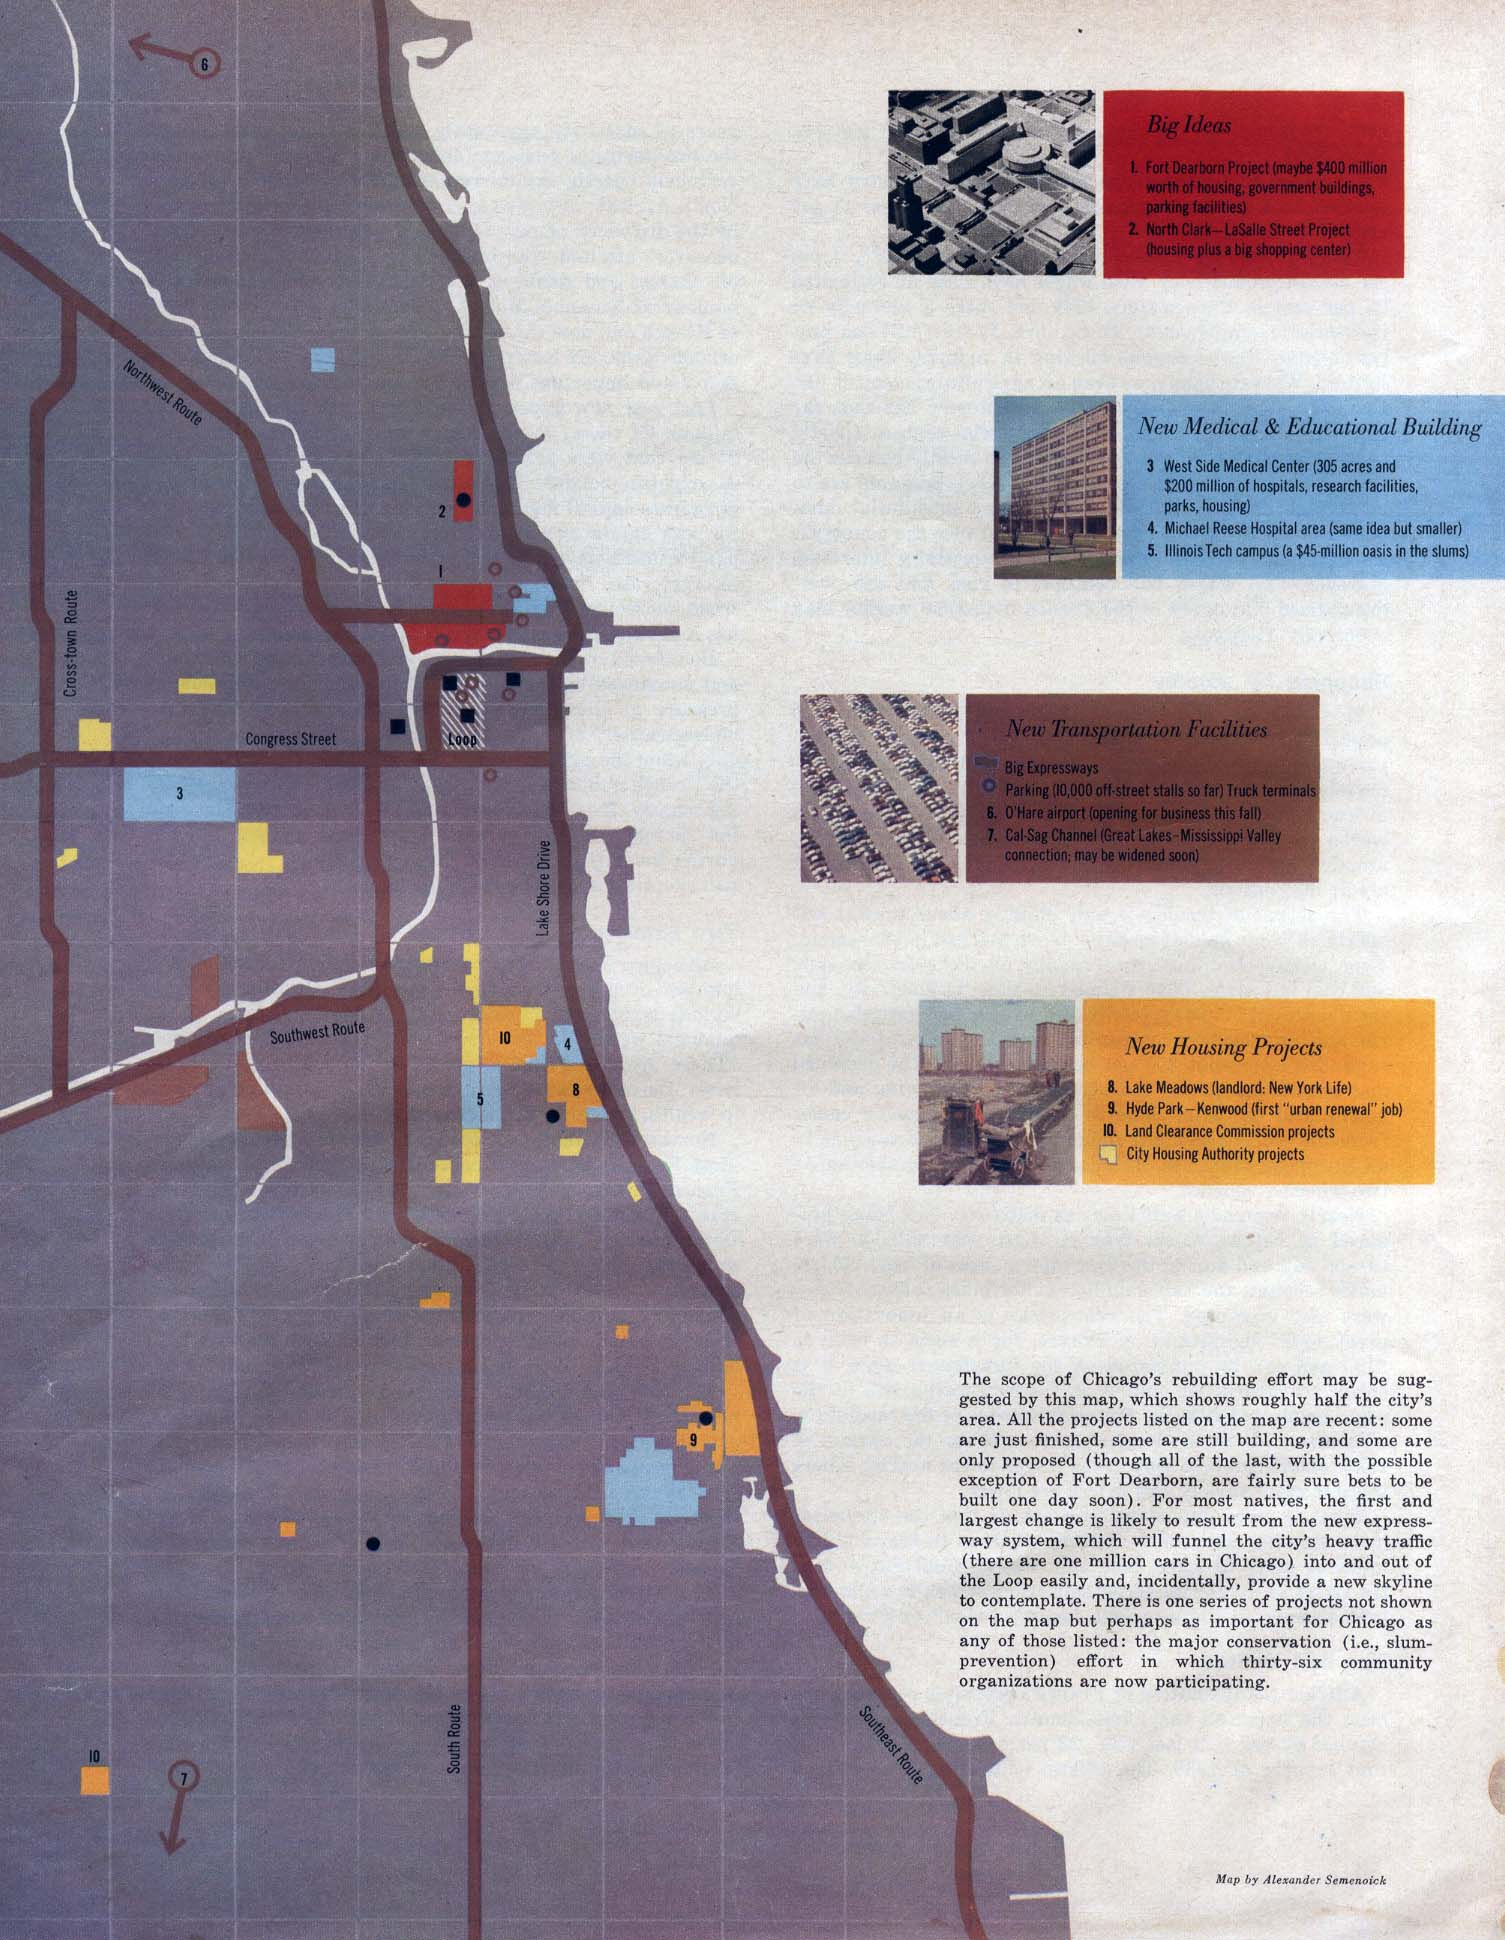 FORTUNE MAGAZINE Informational Images Maps - Nyc map oasis